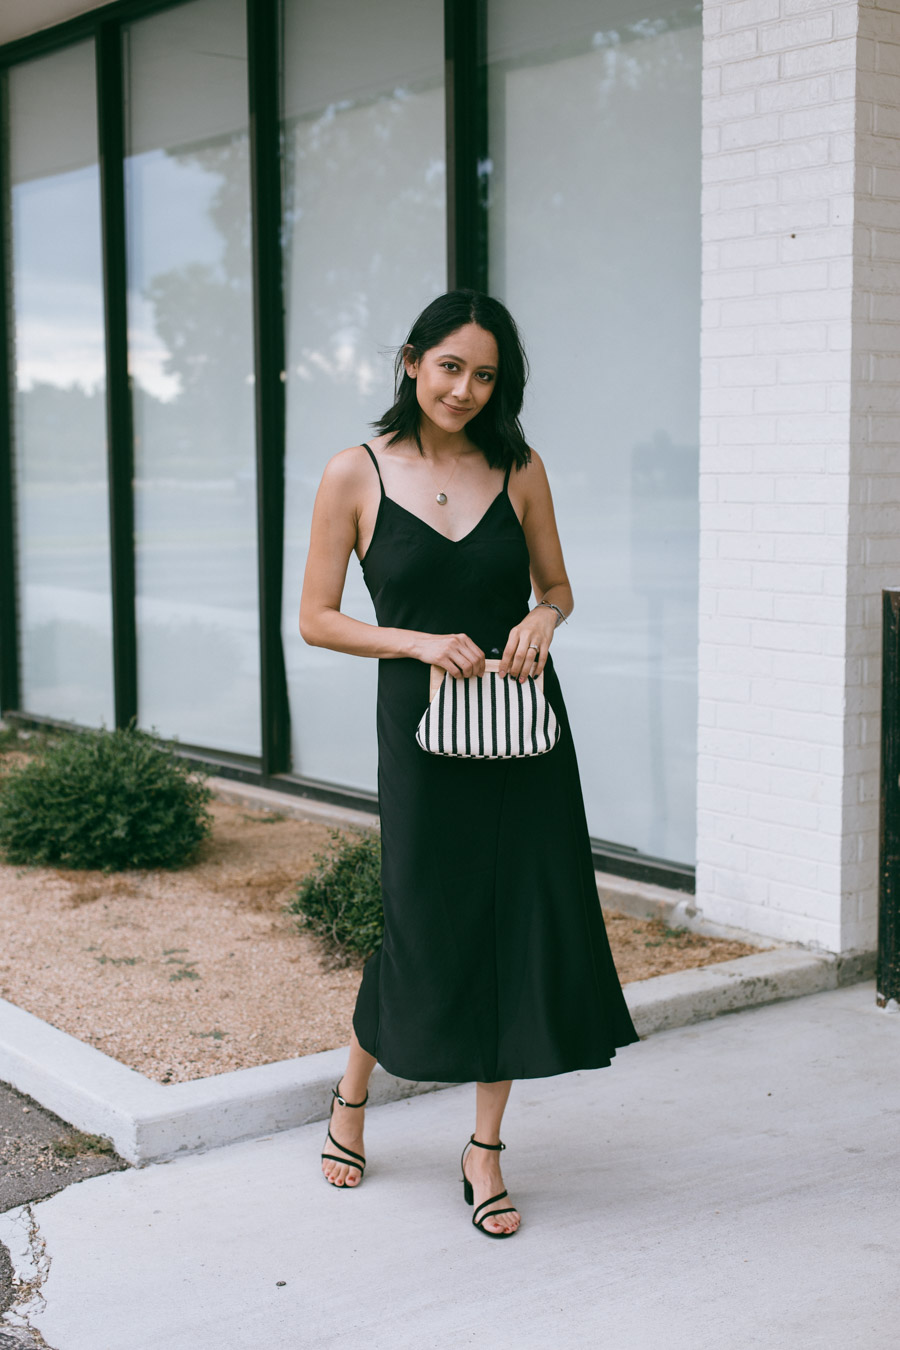 Lilly Beltran in an Asos black dress, Zara clutch and Target sandals for a classic date night look.